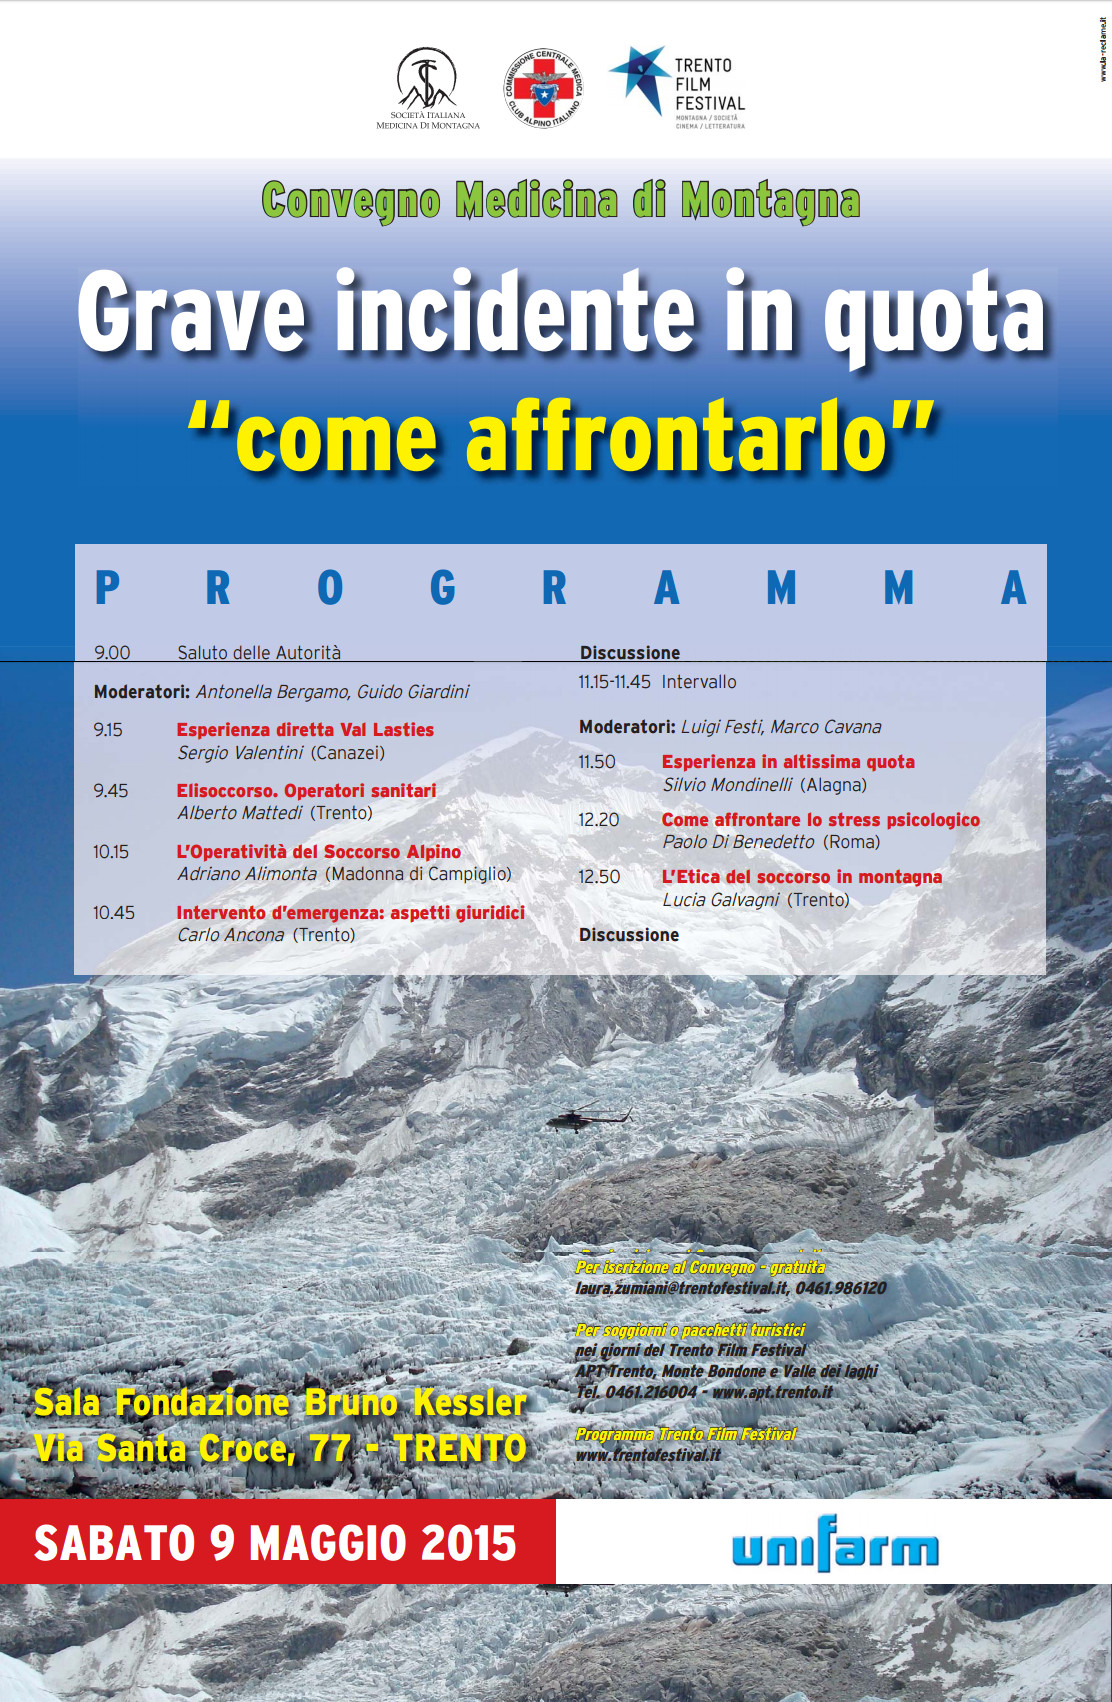 congresso GRAVE INCIDENTE IN QUOTA